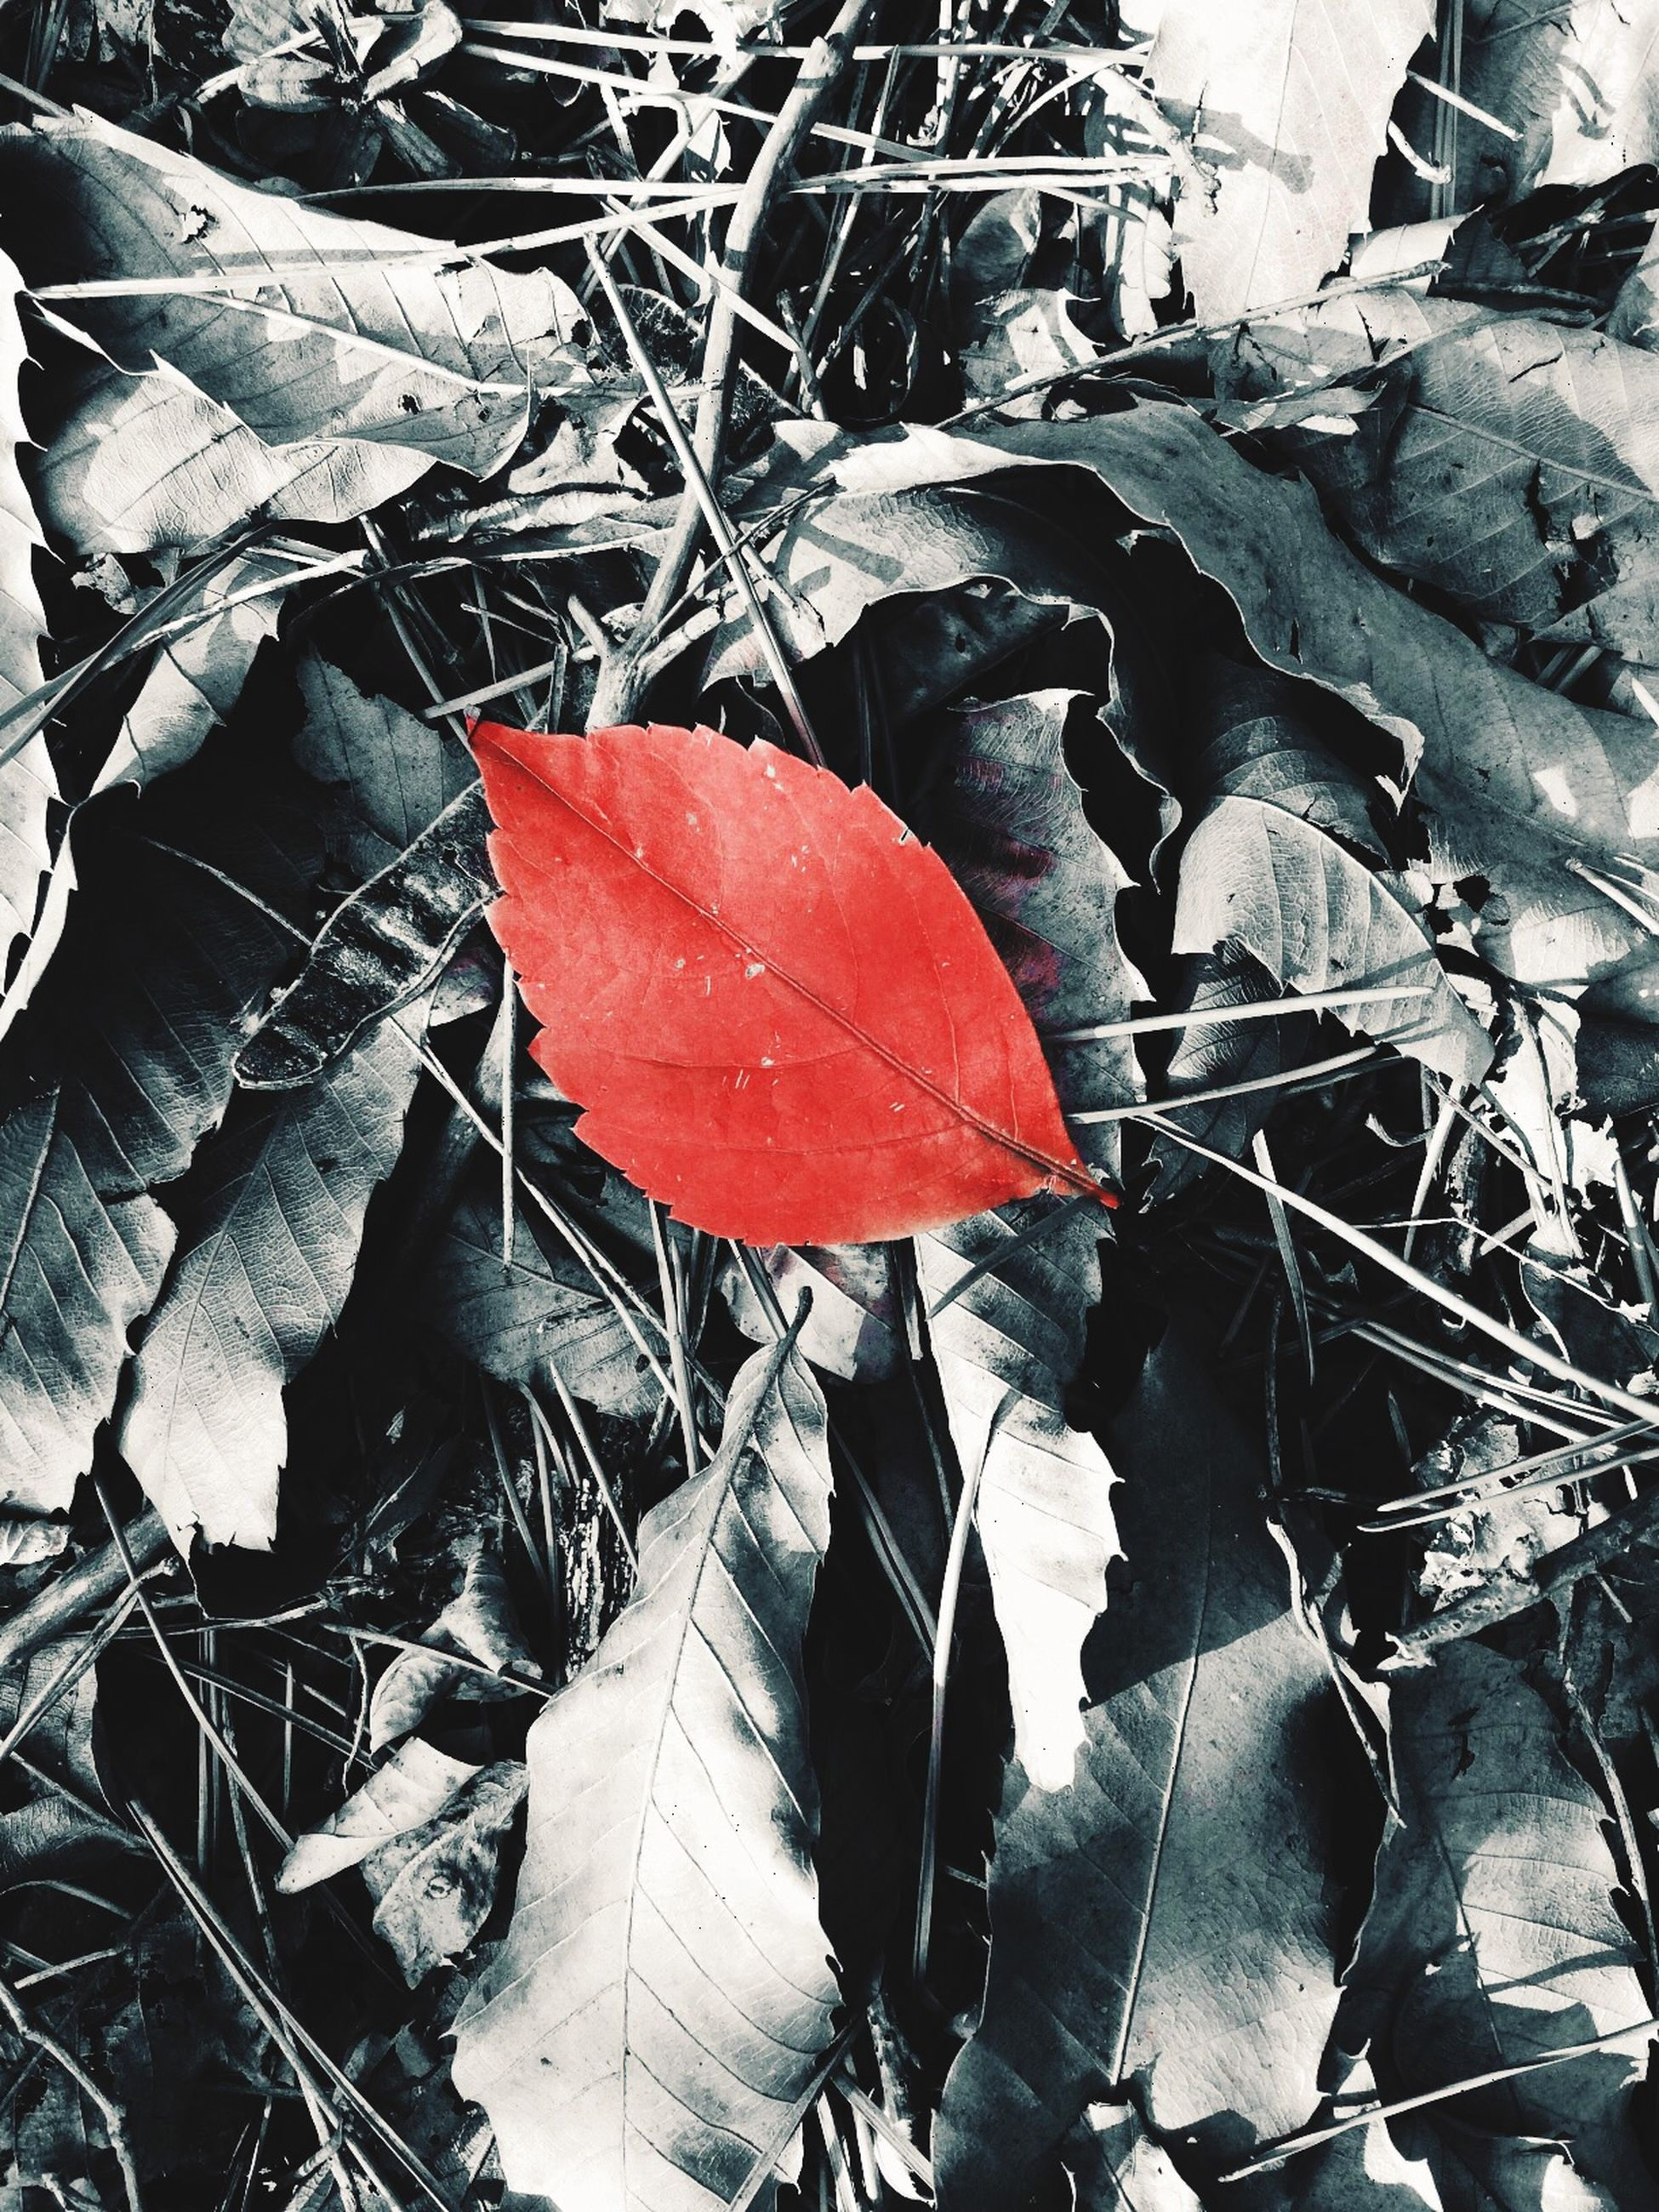 leaf, autumn, change, season, red, dry, leaves, close-up, maple leaf, nature, high angle view, weather, leaf vein, fallen, water, wet, plant, day, outdoors, fragility